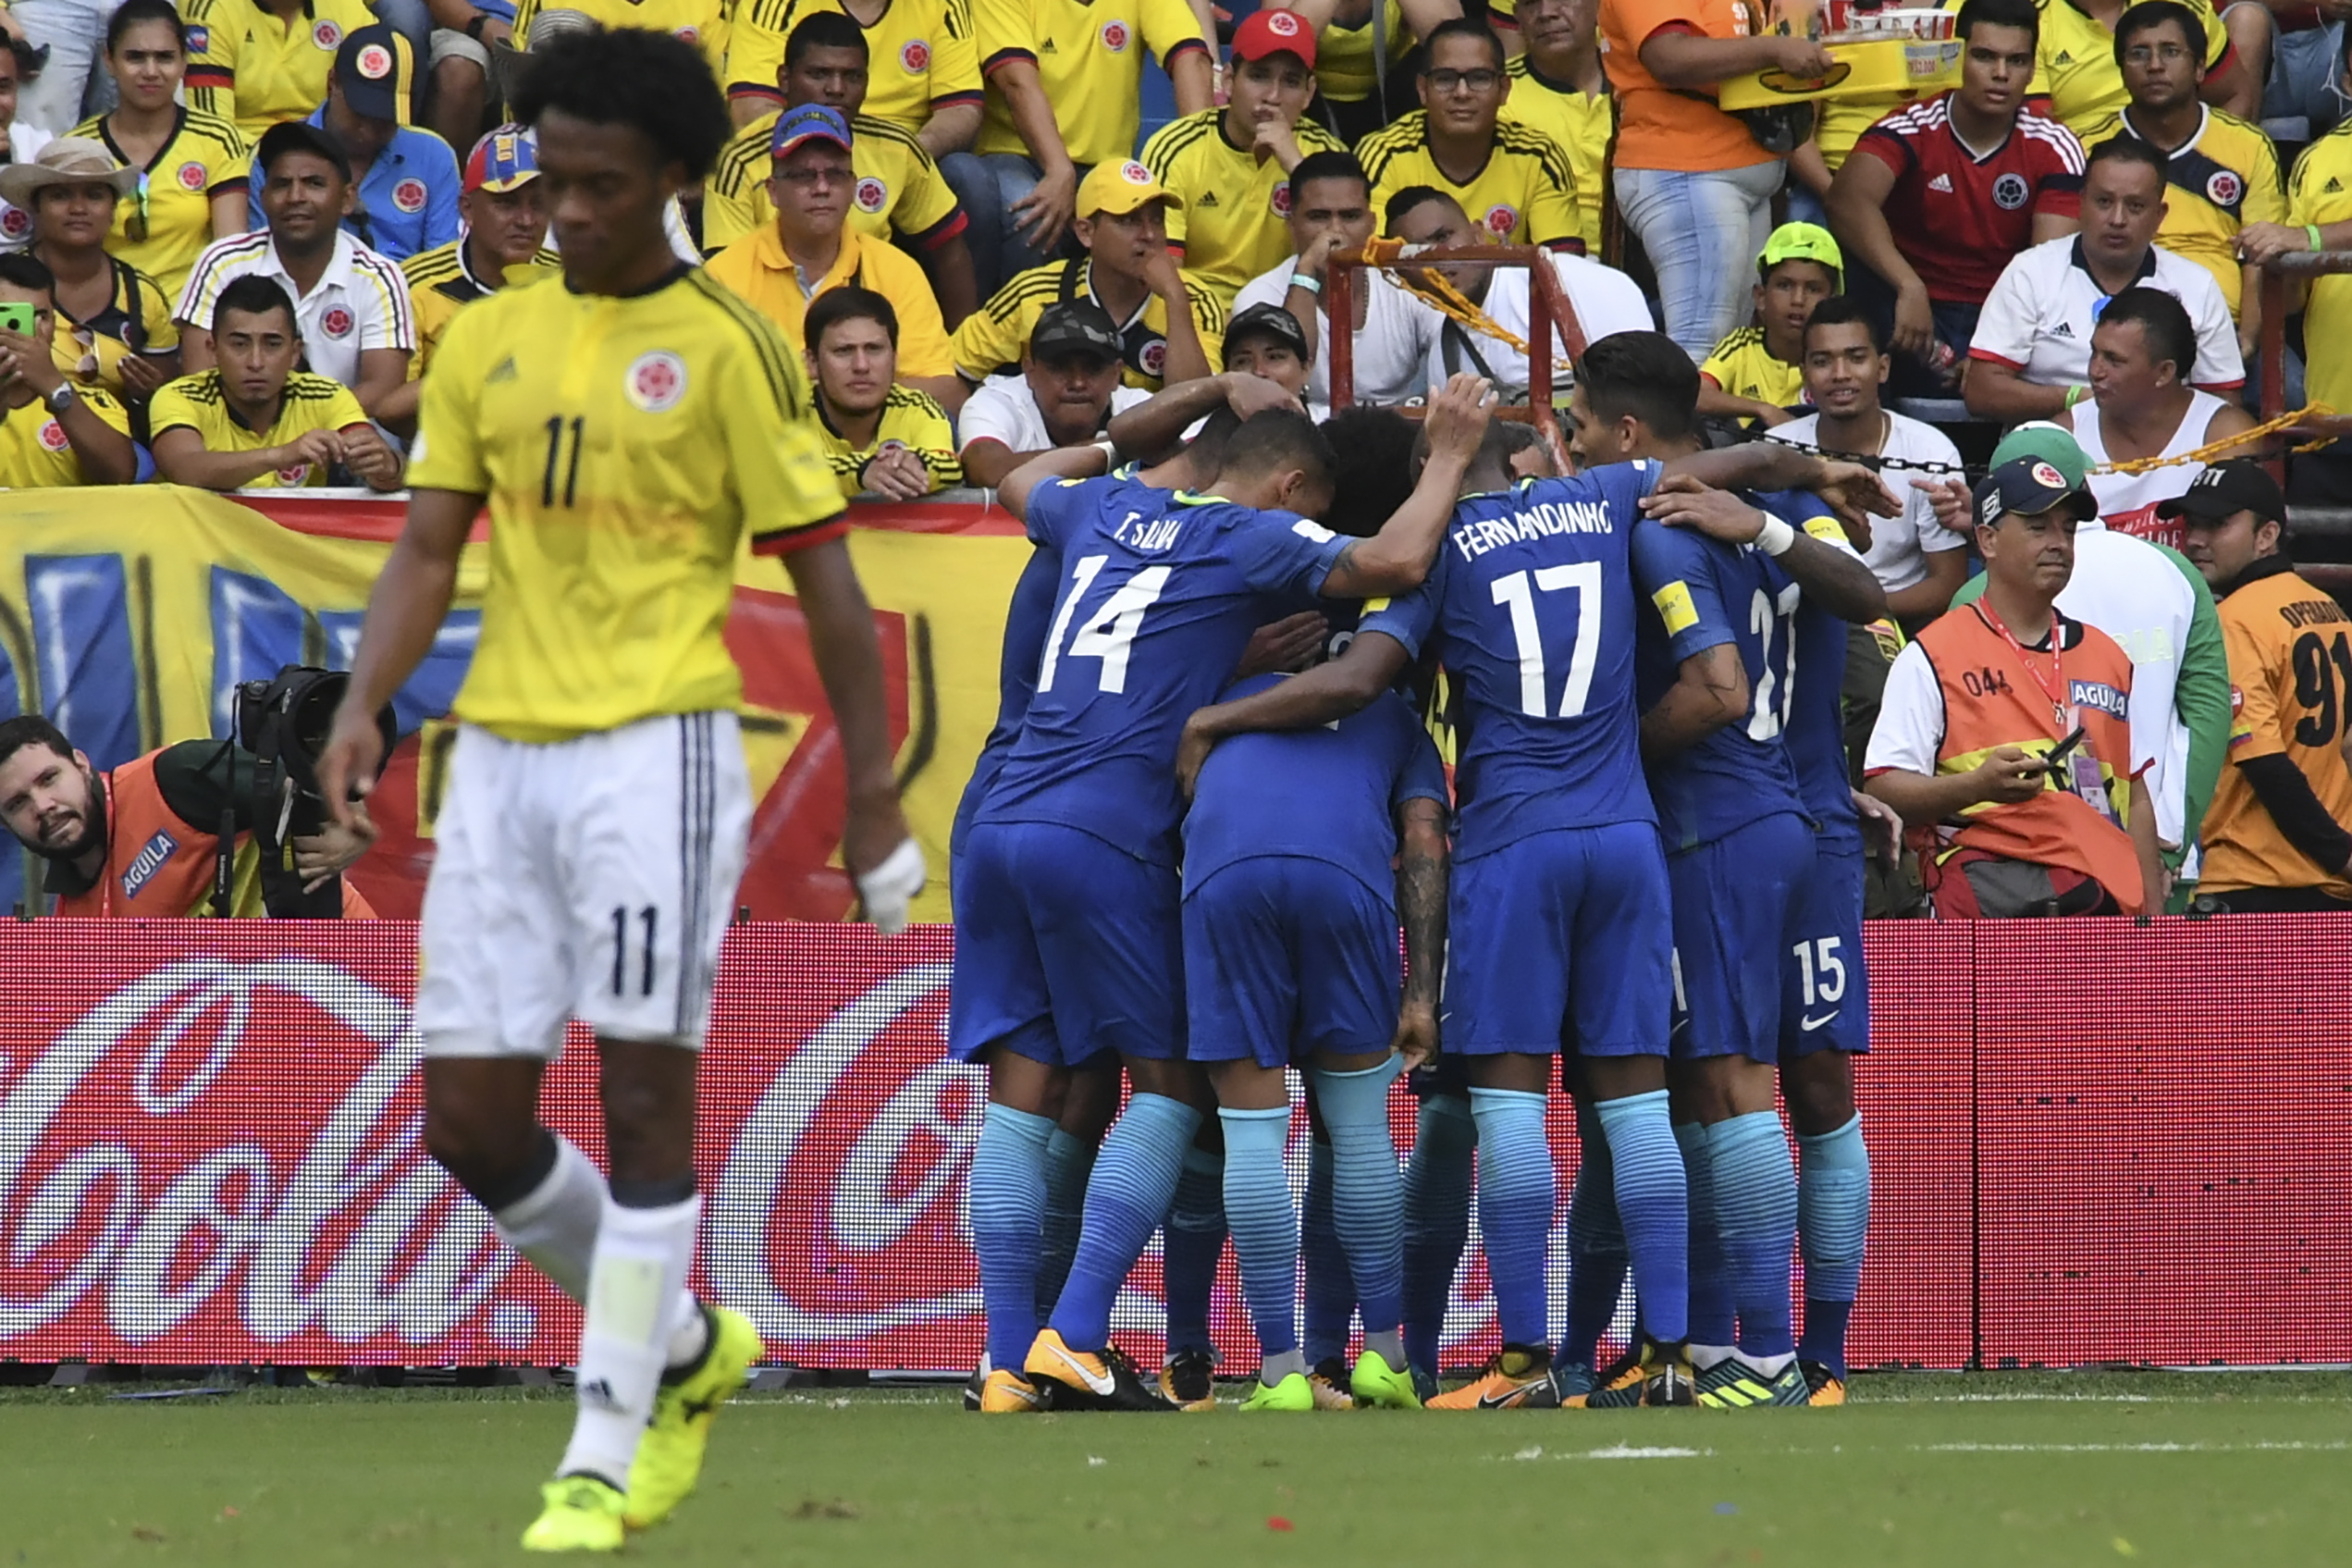 Colombia hosts Brazil in critical World Cup qualifier